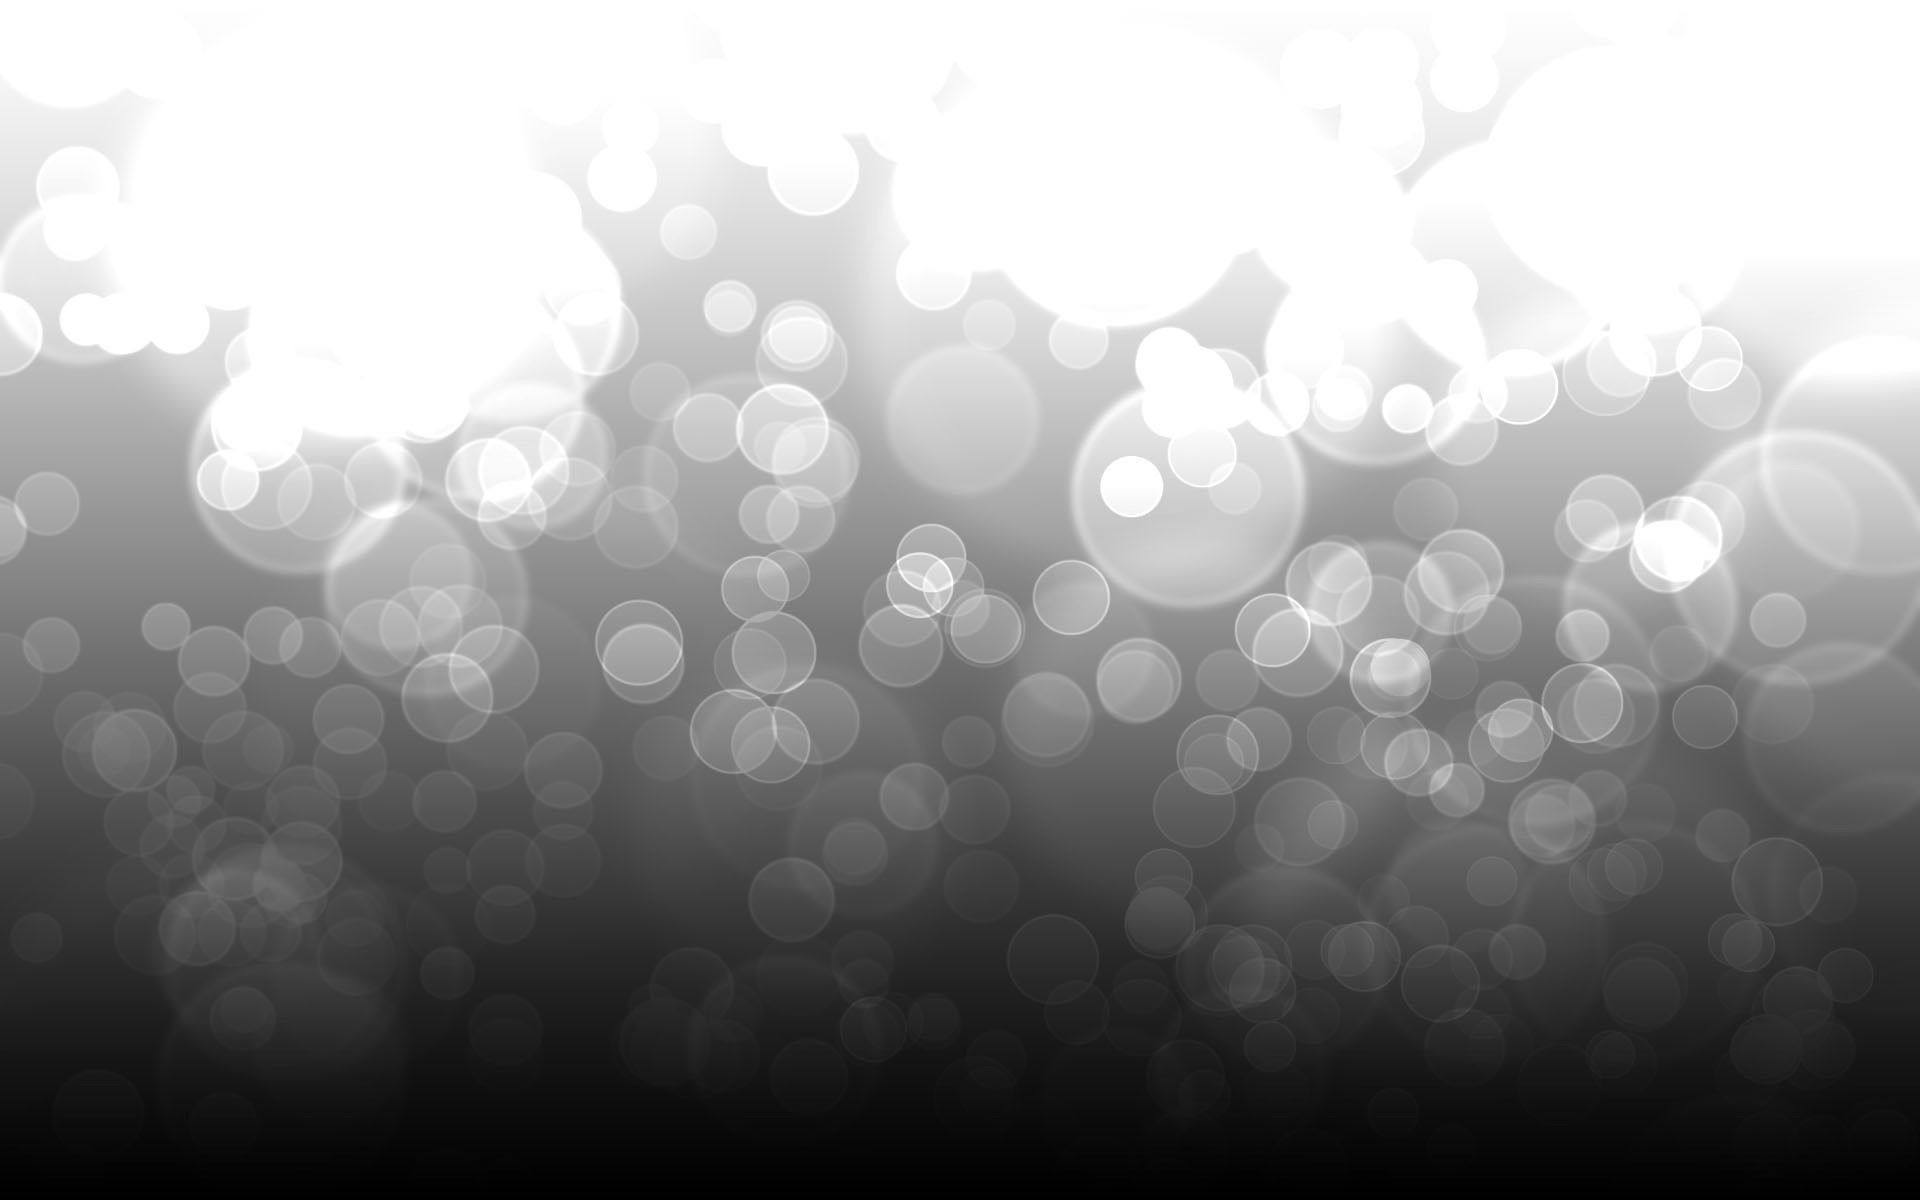 Light Texture Light Light Background Texture Background Photo Black And White Abstract Lights Background Picture Light Abstract white wallpaper light